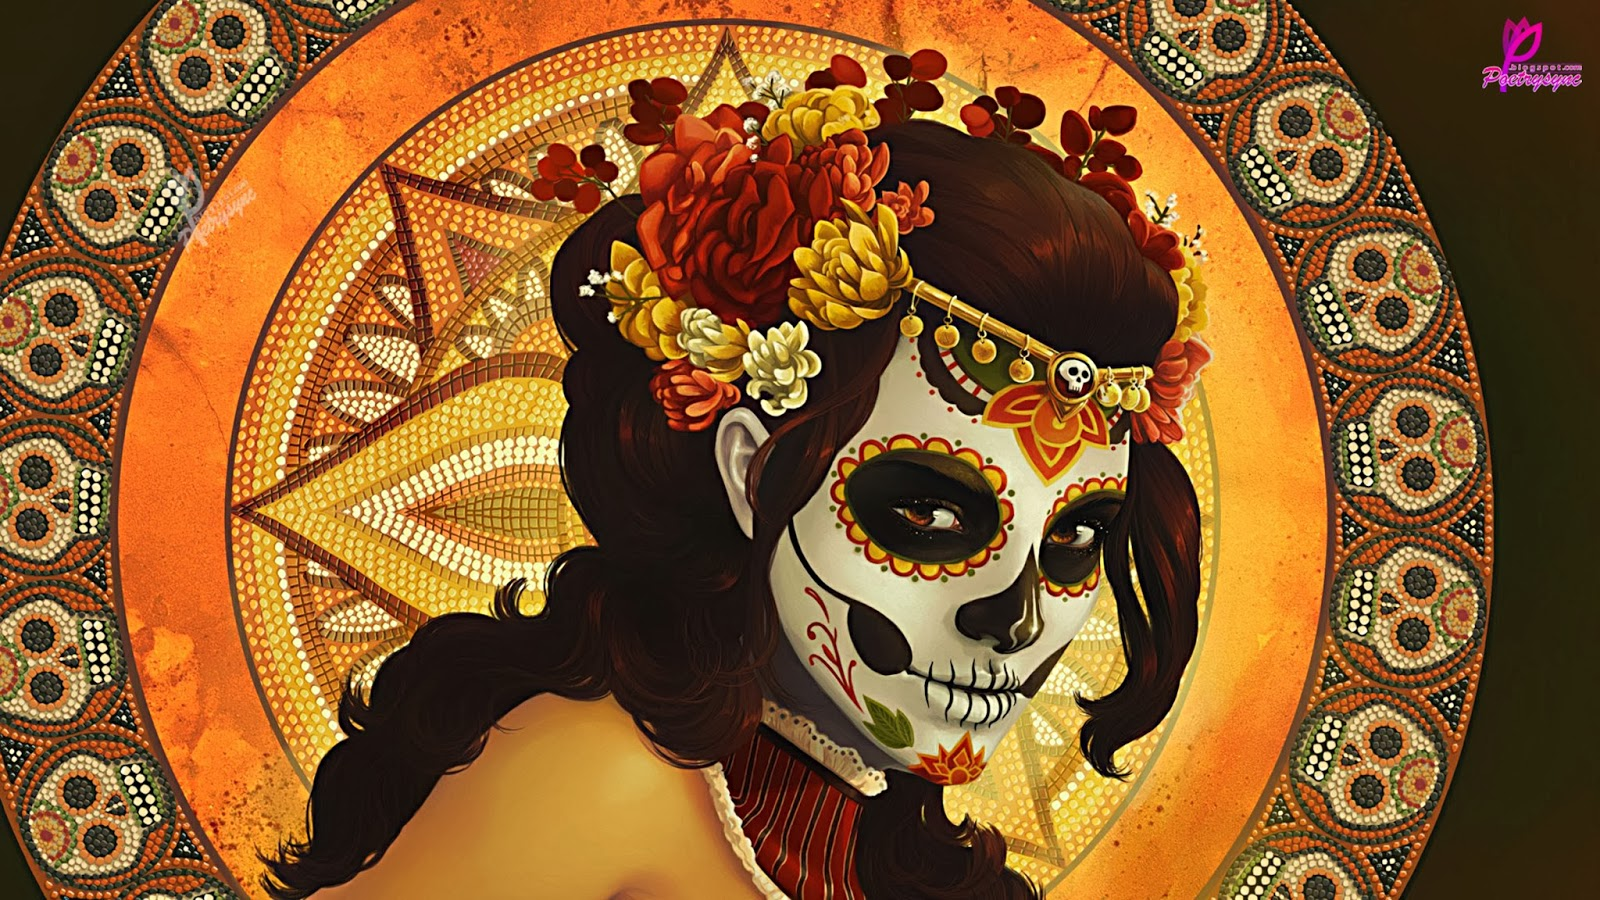 Sunday Of The Dead Festival 2013 Wallpapers With Quotes Poetry 1600x900